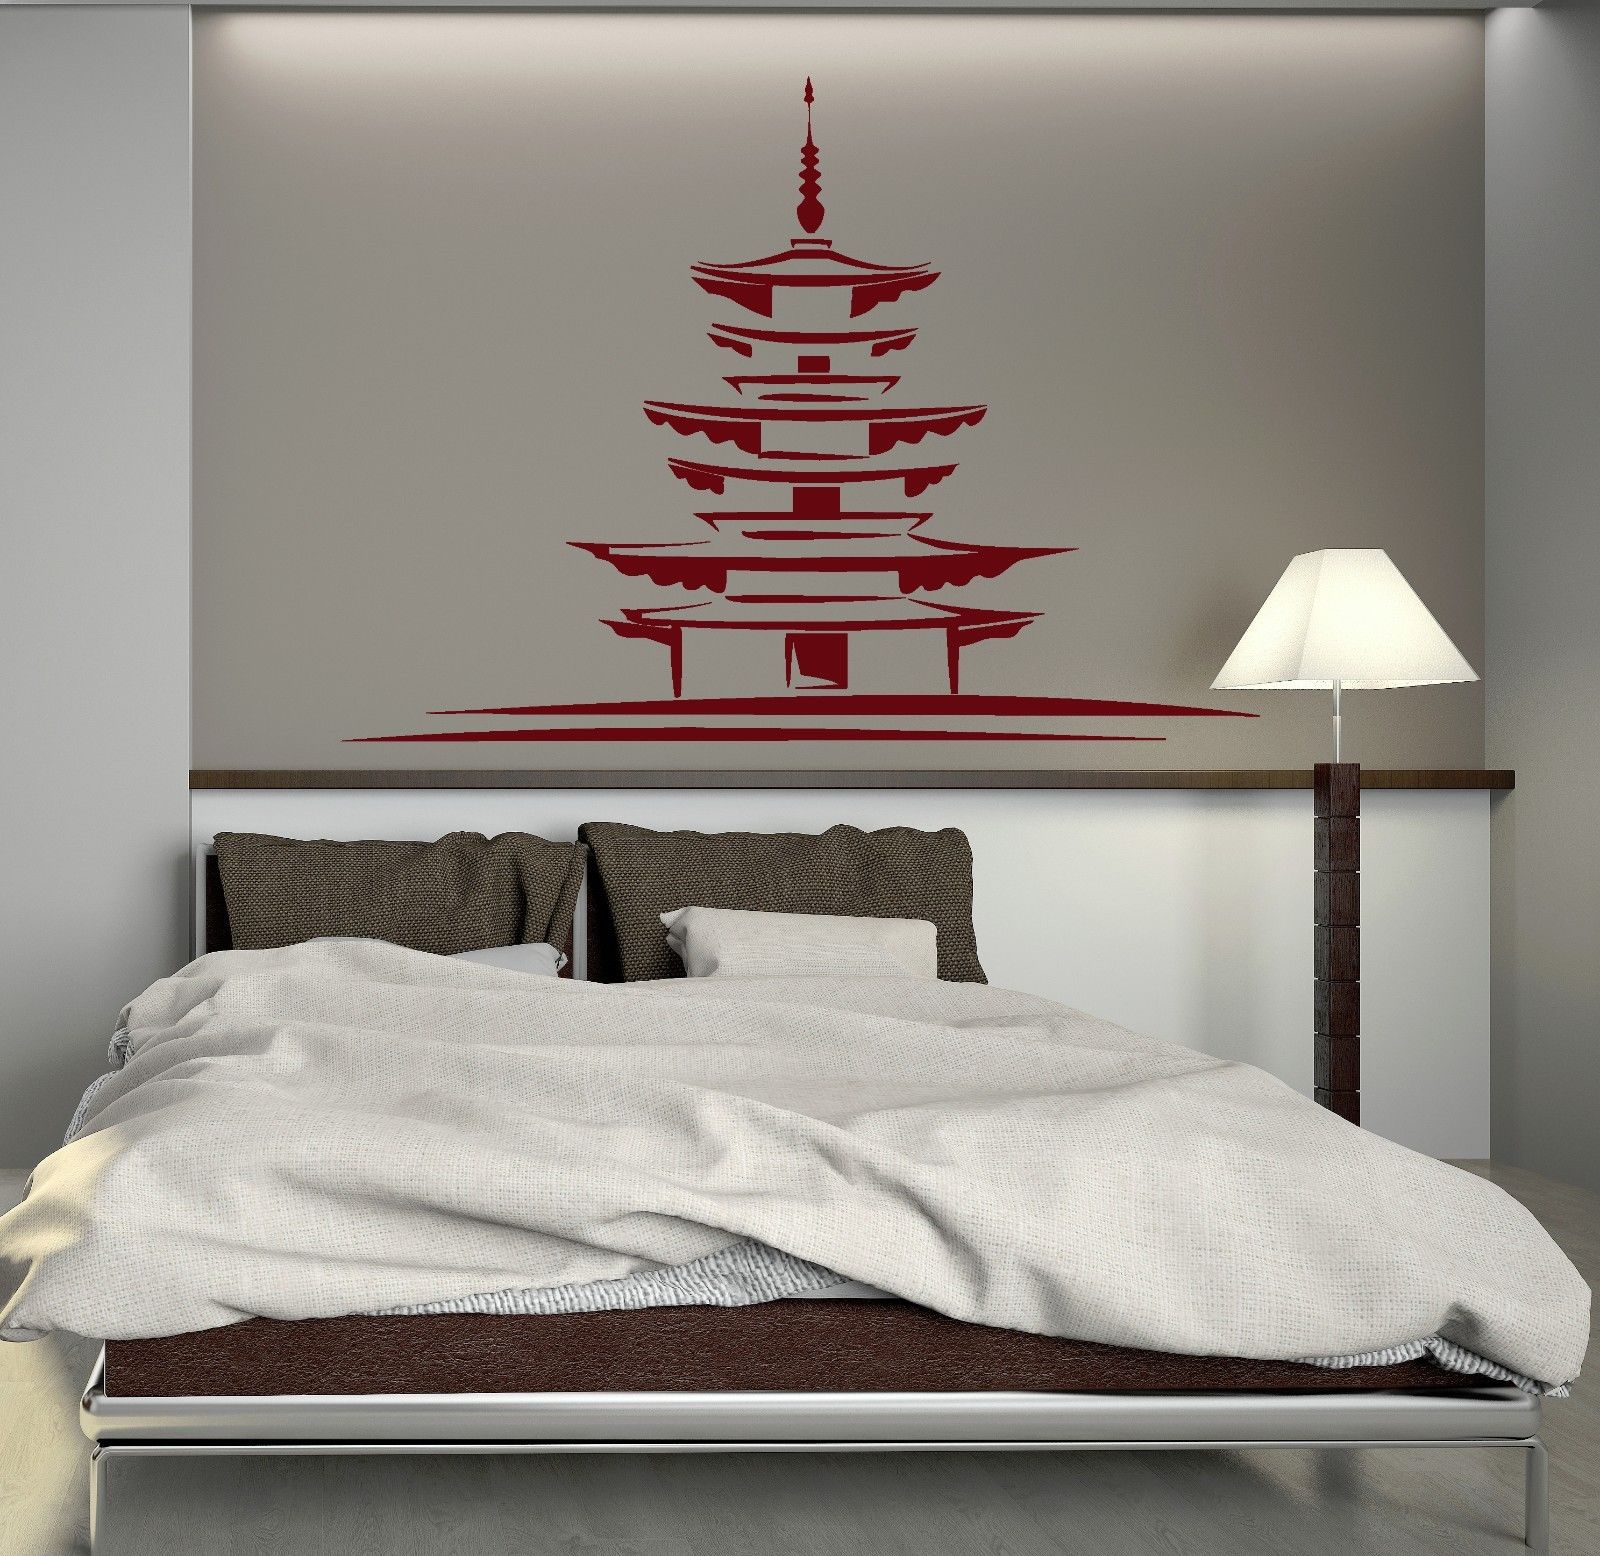 Japanese Home Decor Store: New Home Vinyl Decal Japan Japanese Architecture Oriental